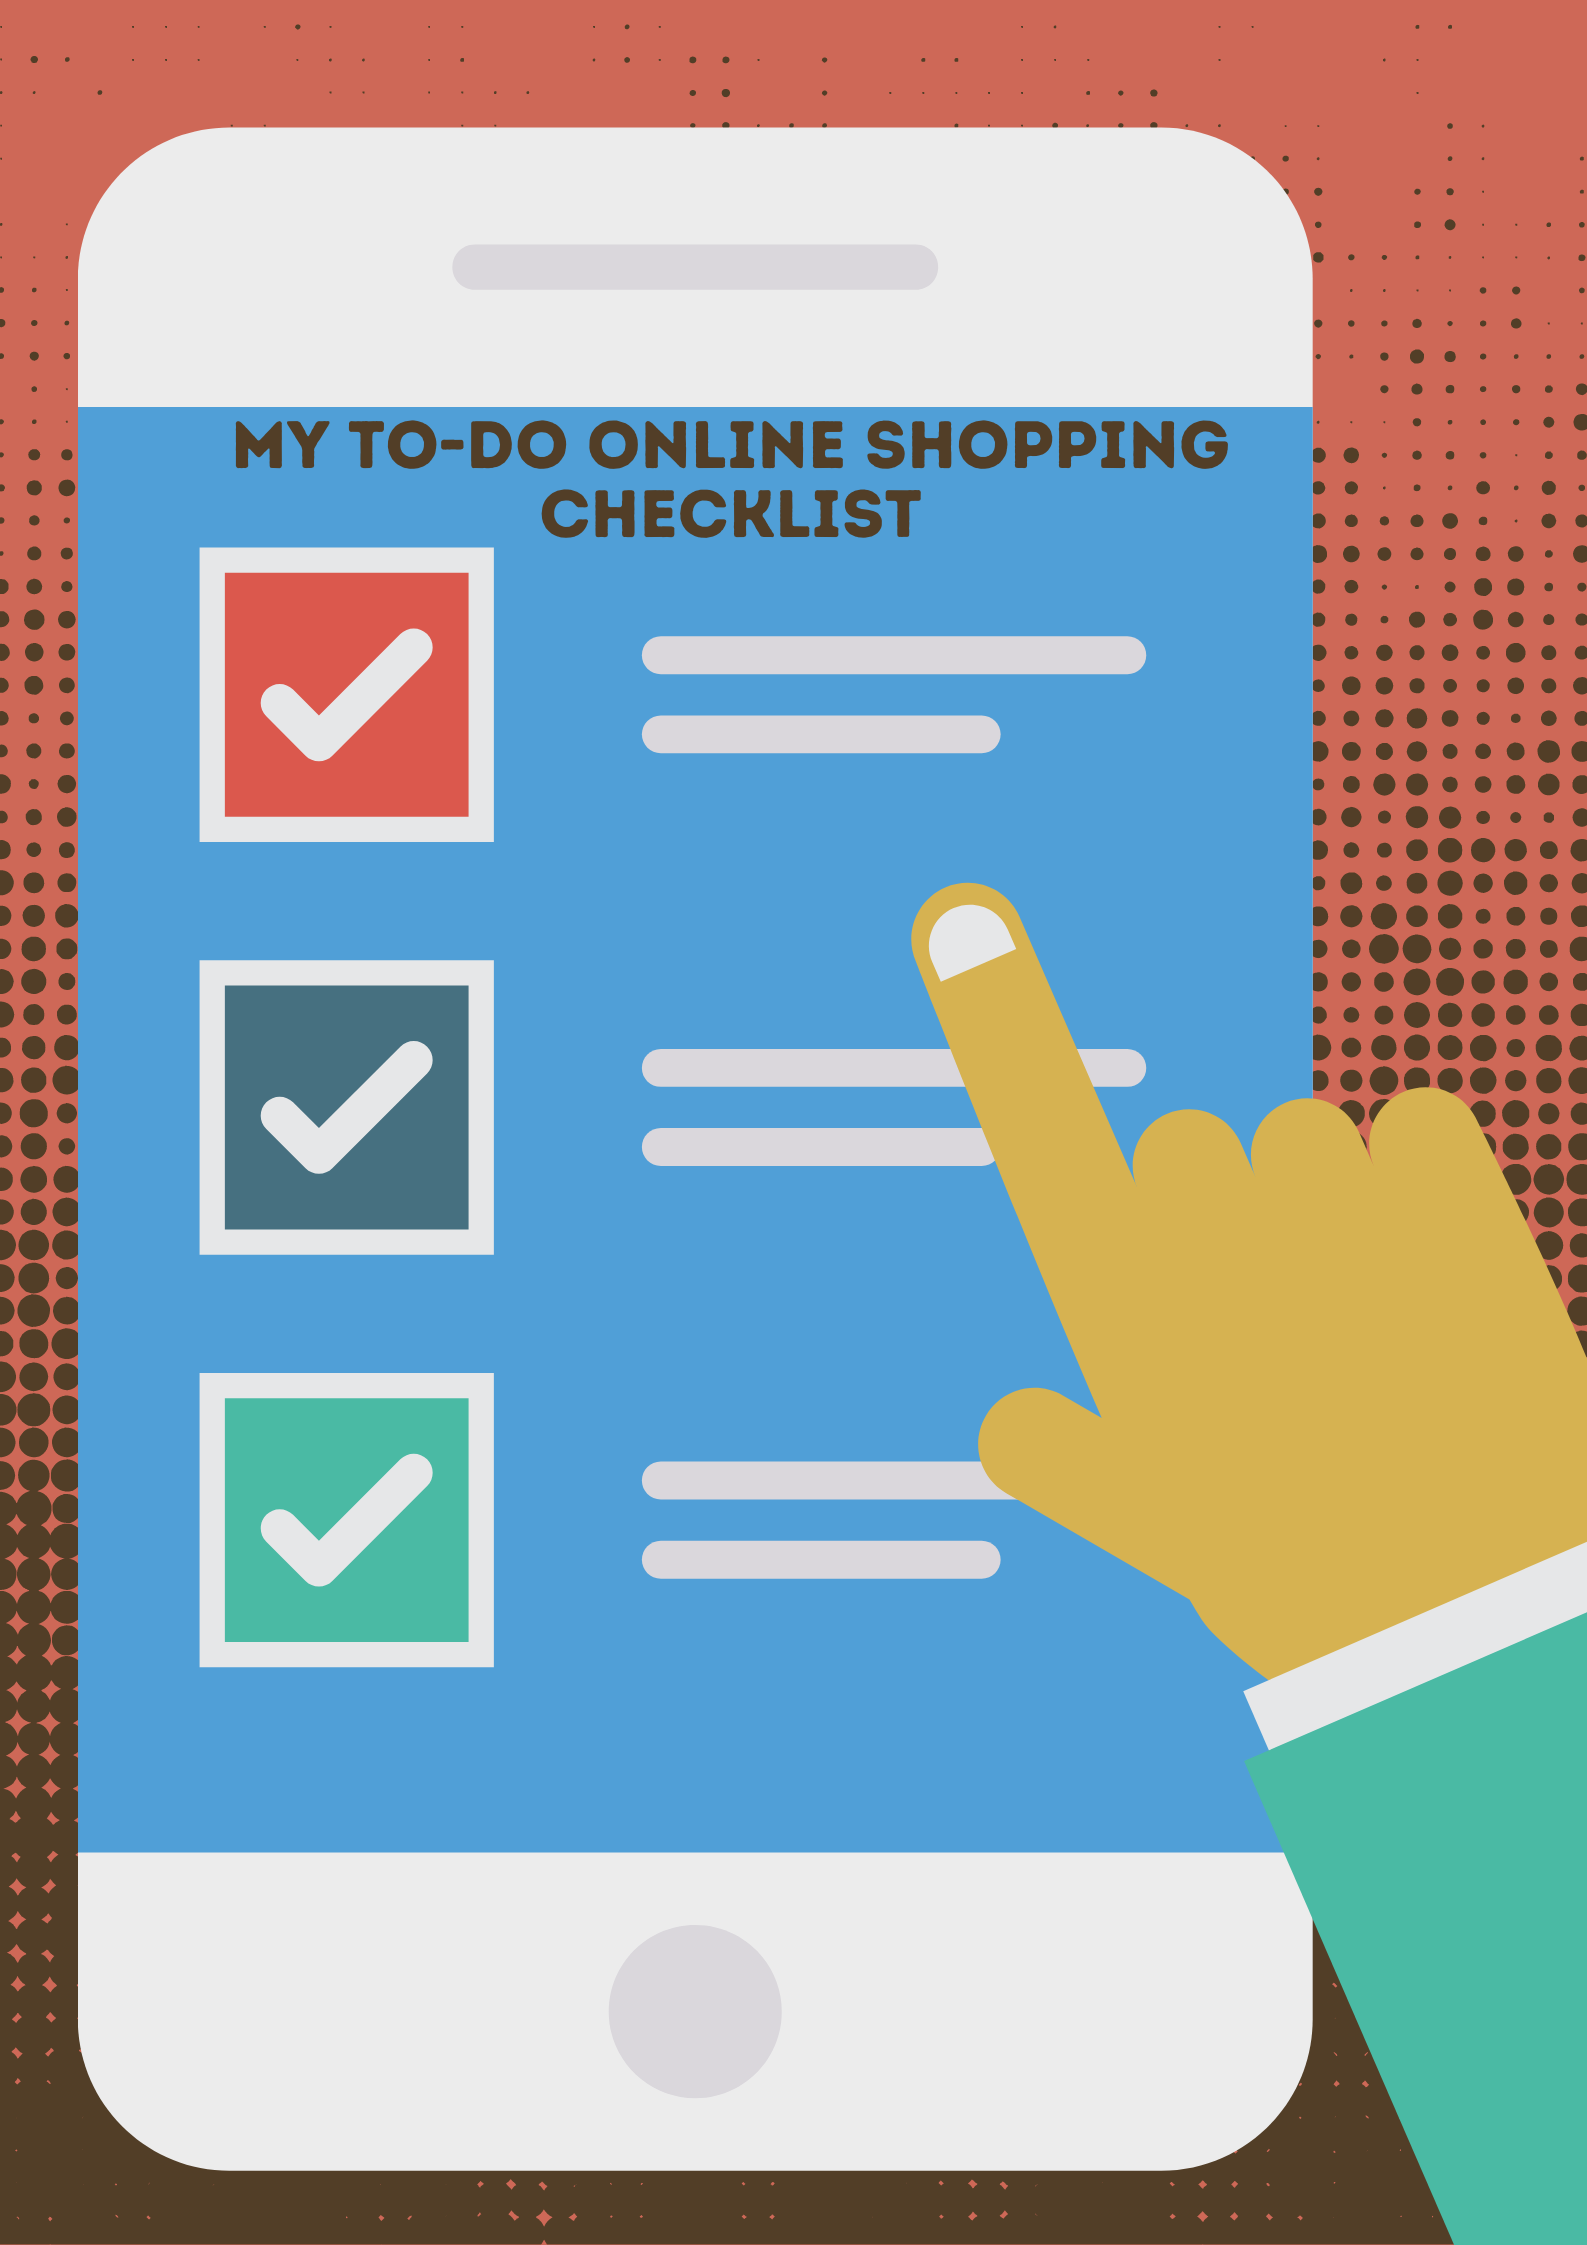 My-To-Do-Online-Shopping-Checklist